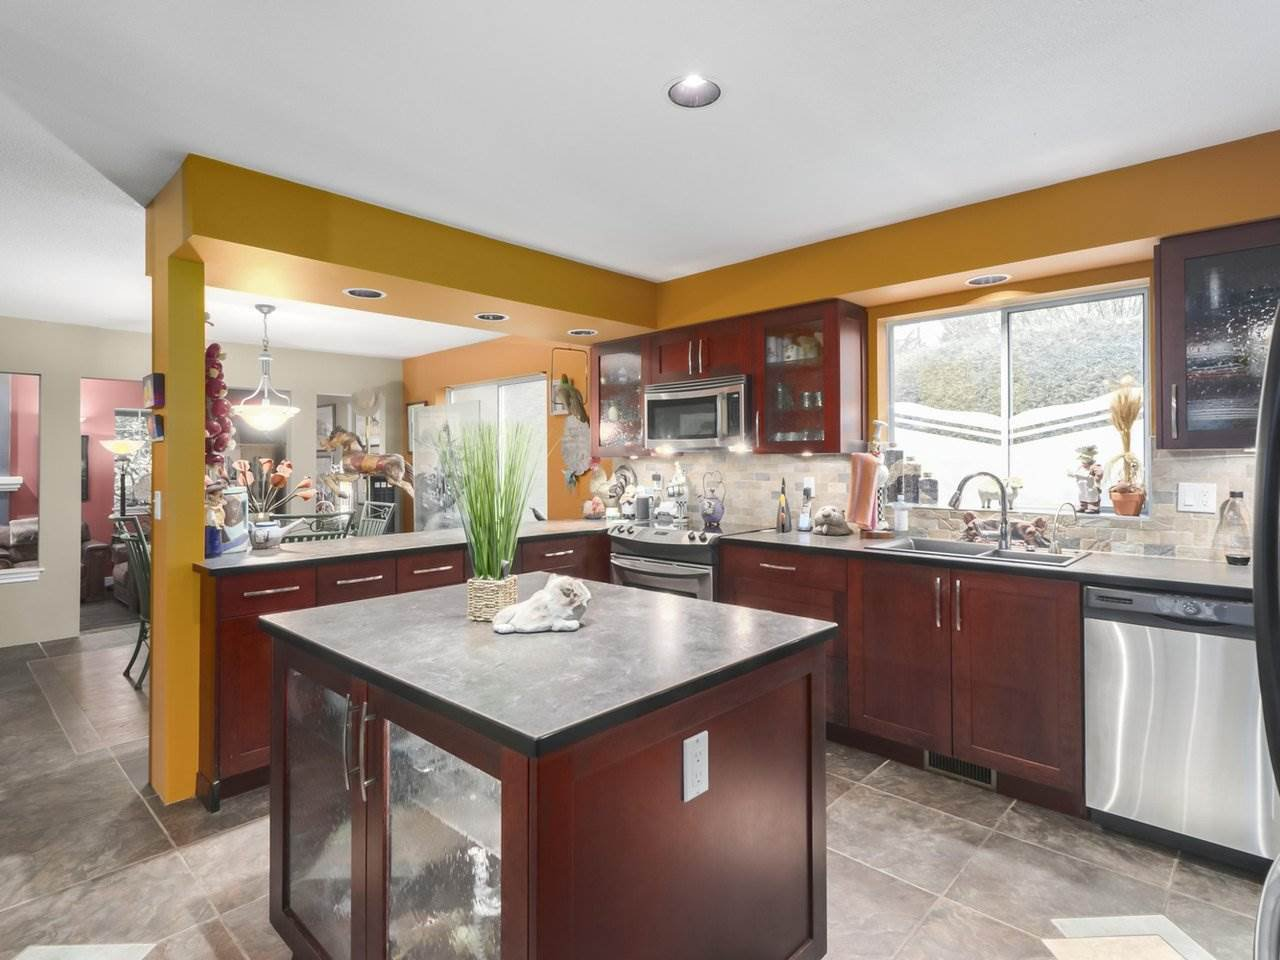 Photo 9: Photos: 13957 32 Avenue in Surrey: Elgin Chantrell House for sale (South Surrey White Rock)  : MLS®# R2466206